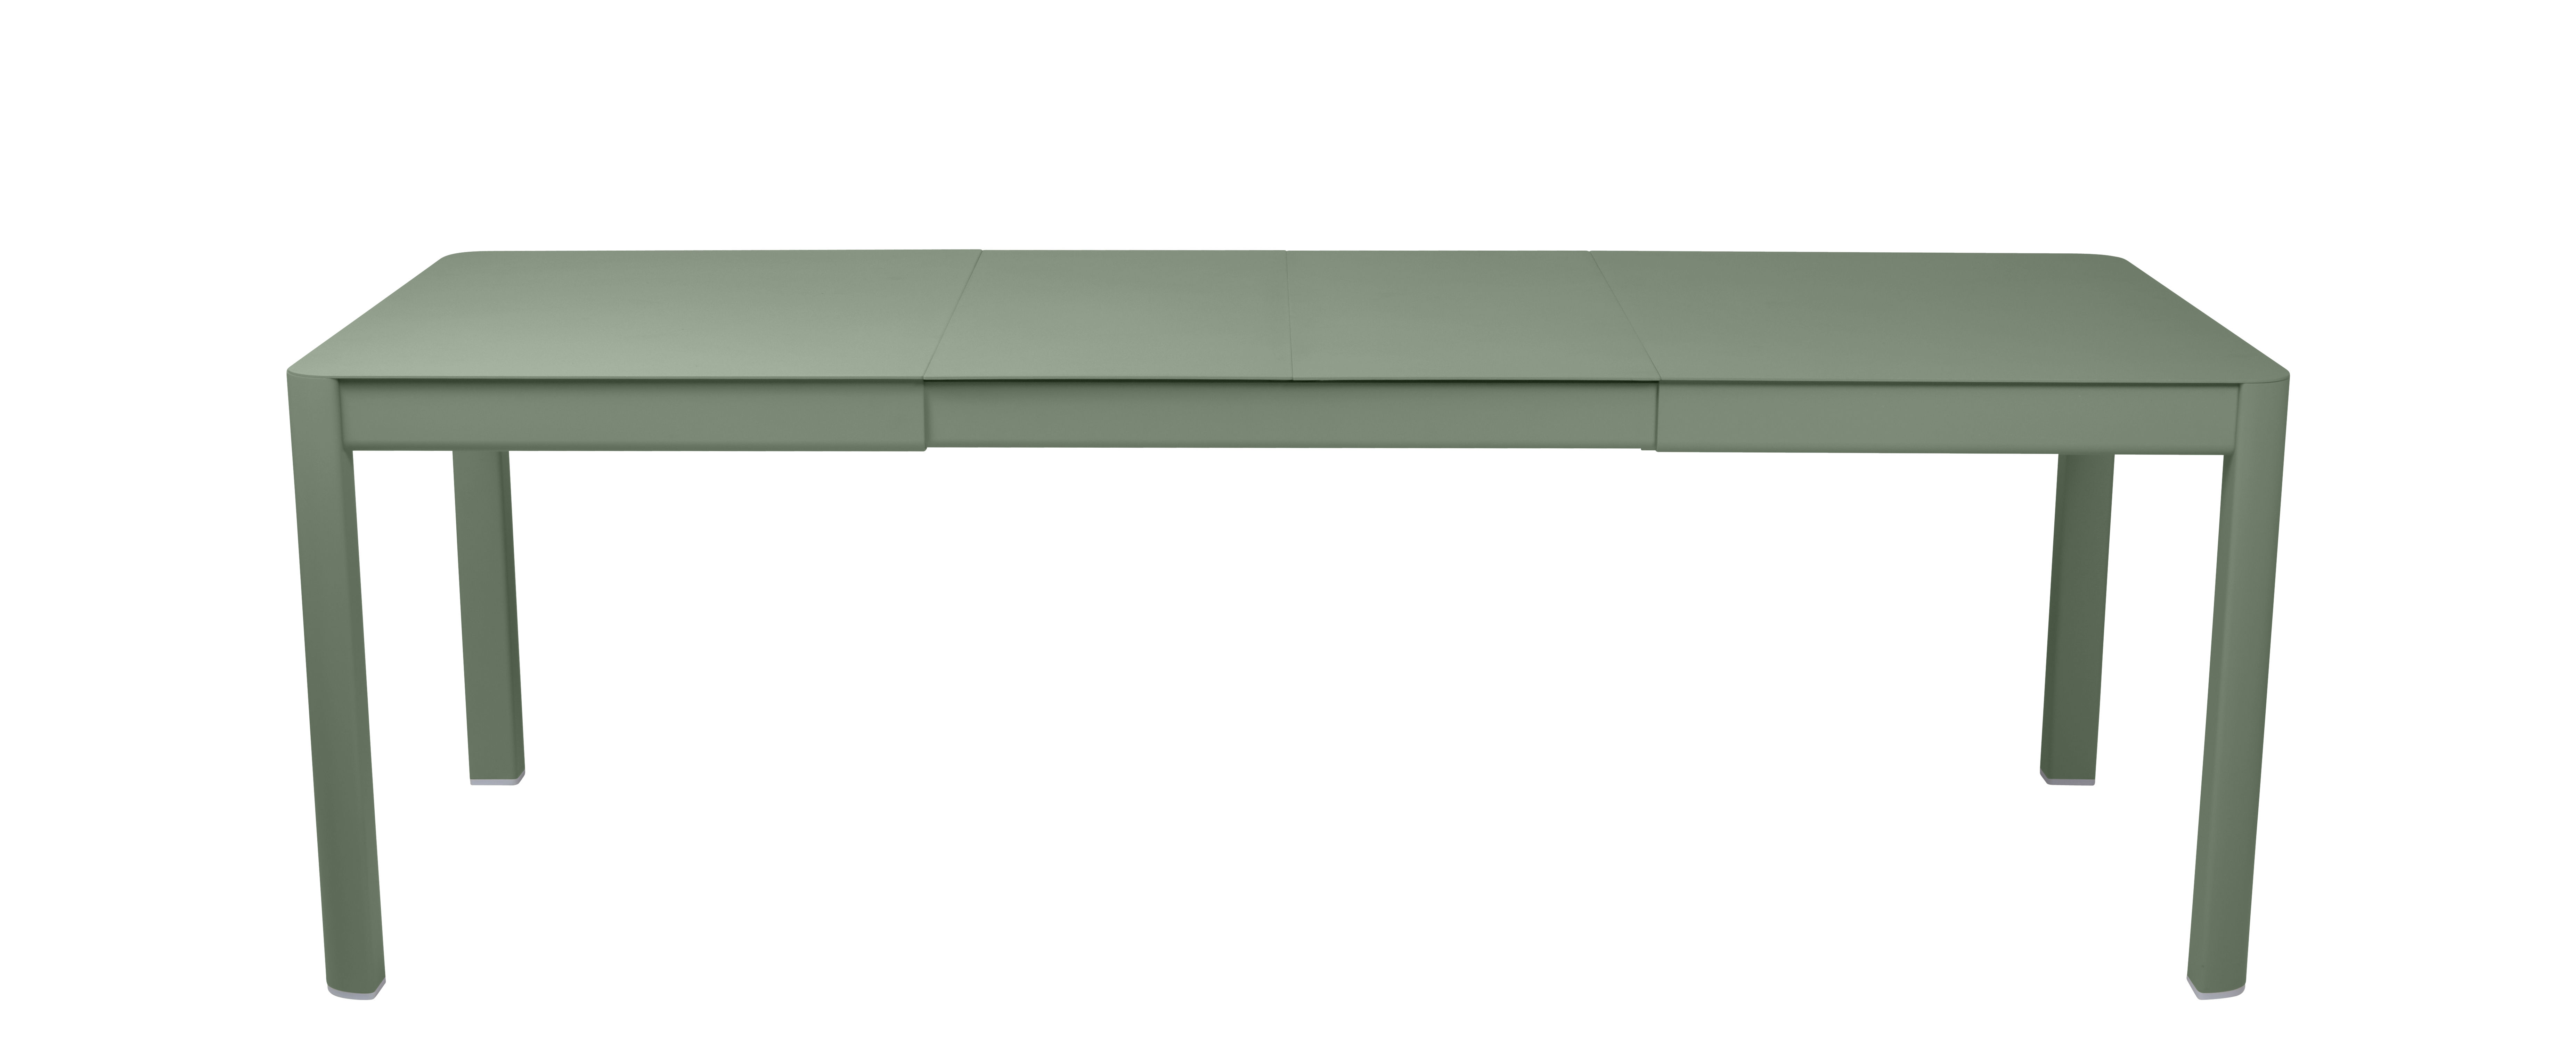 Outdoor - Garden Tables - Ribambelle Medium Extending table - / L 149 to 234 cm - 6 to 10 people by Fermob - Cactus - Aluminium